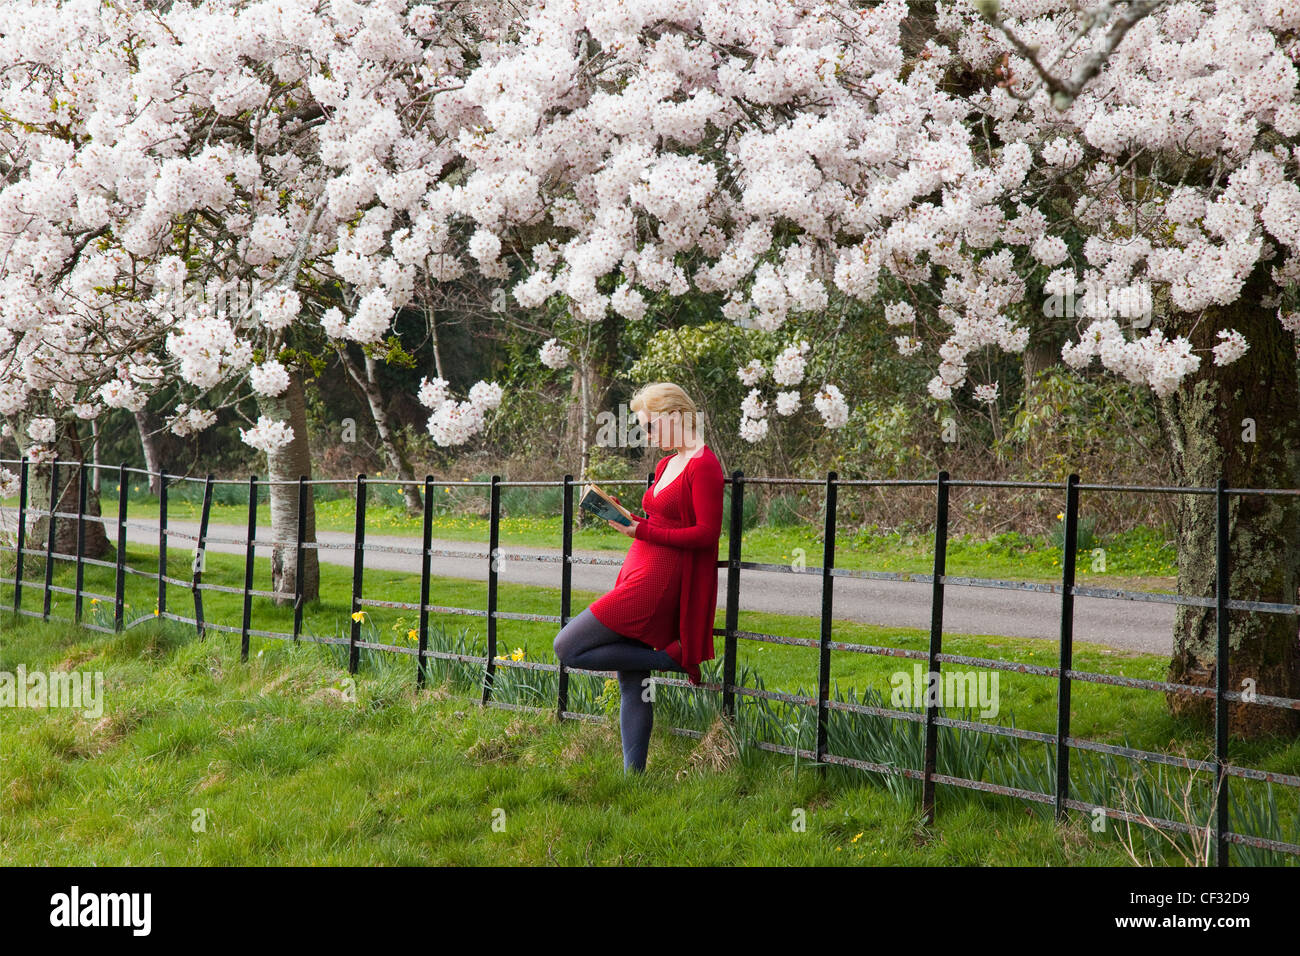 A Young Woman Leans Against A Fence And Reads A Book Under The Cherry Blossom Trees; Killarney County Kerry Ireland - Stock Image